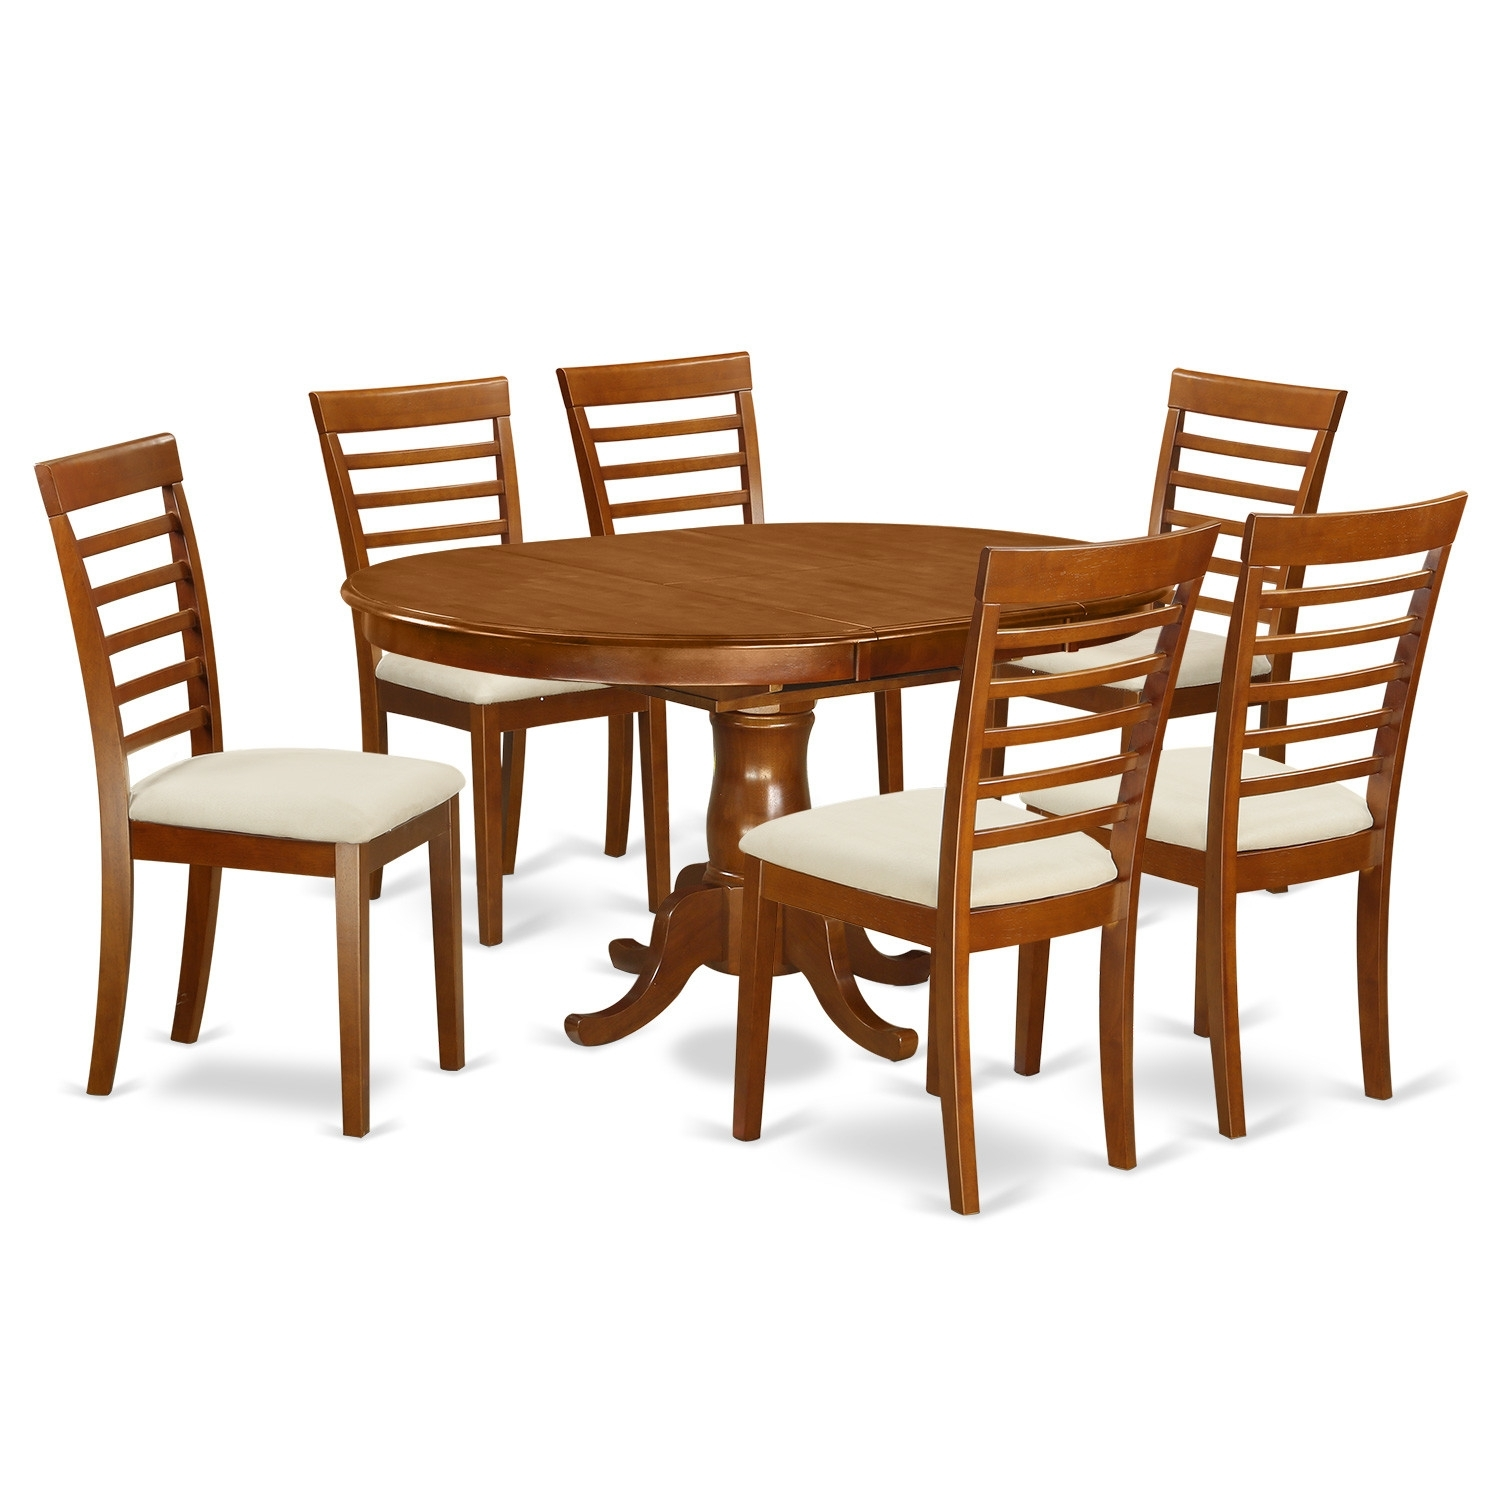 100 K House: Loon Peak Matterhorn 7 Piece Dining Set Amp; Reviews For Latest Bradford 7 Piece Dining Sets With Bardstown Side Chairs (Image 1 of 20)